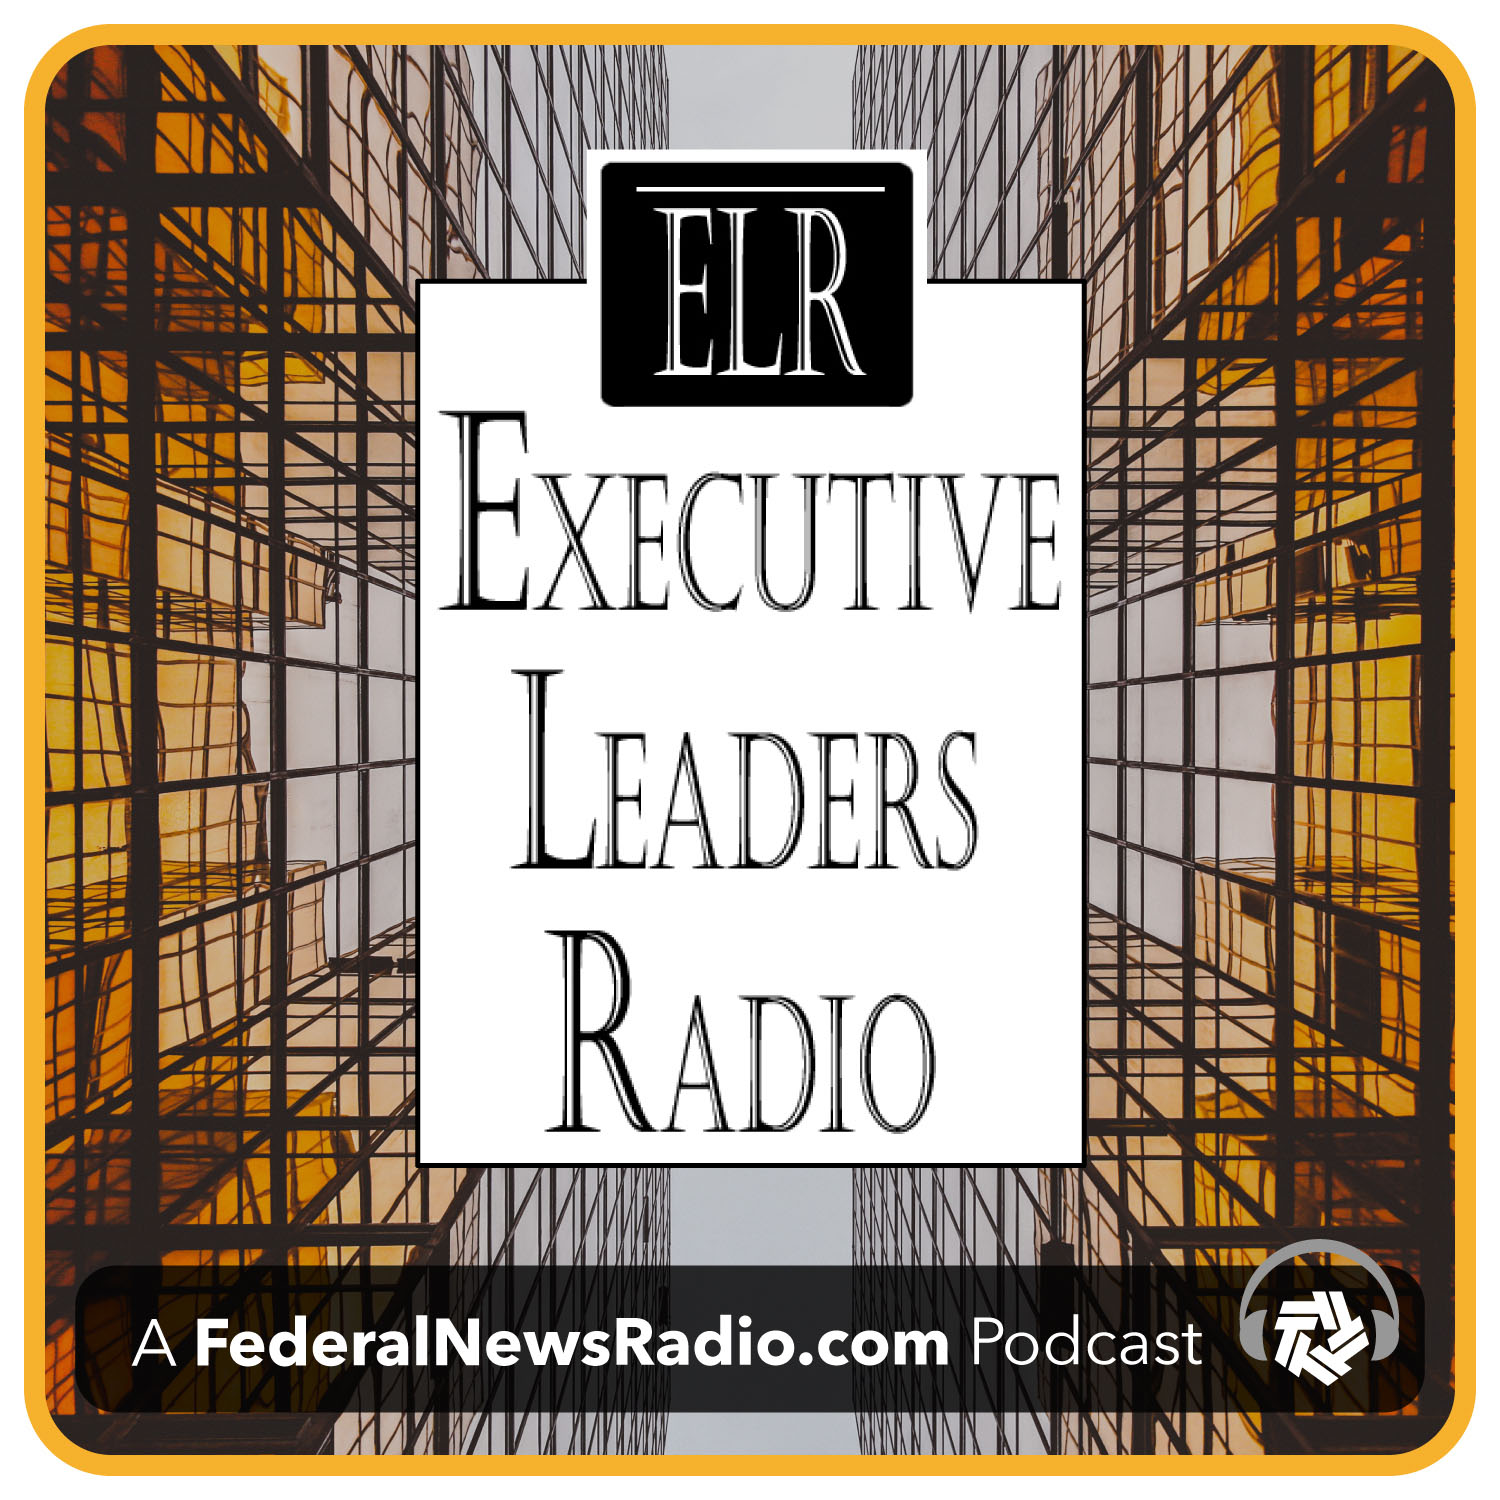 PodcastOne Executive Leaders Radio - Minecraft ftb hauser